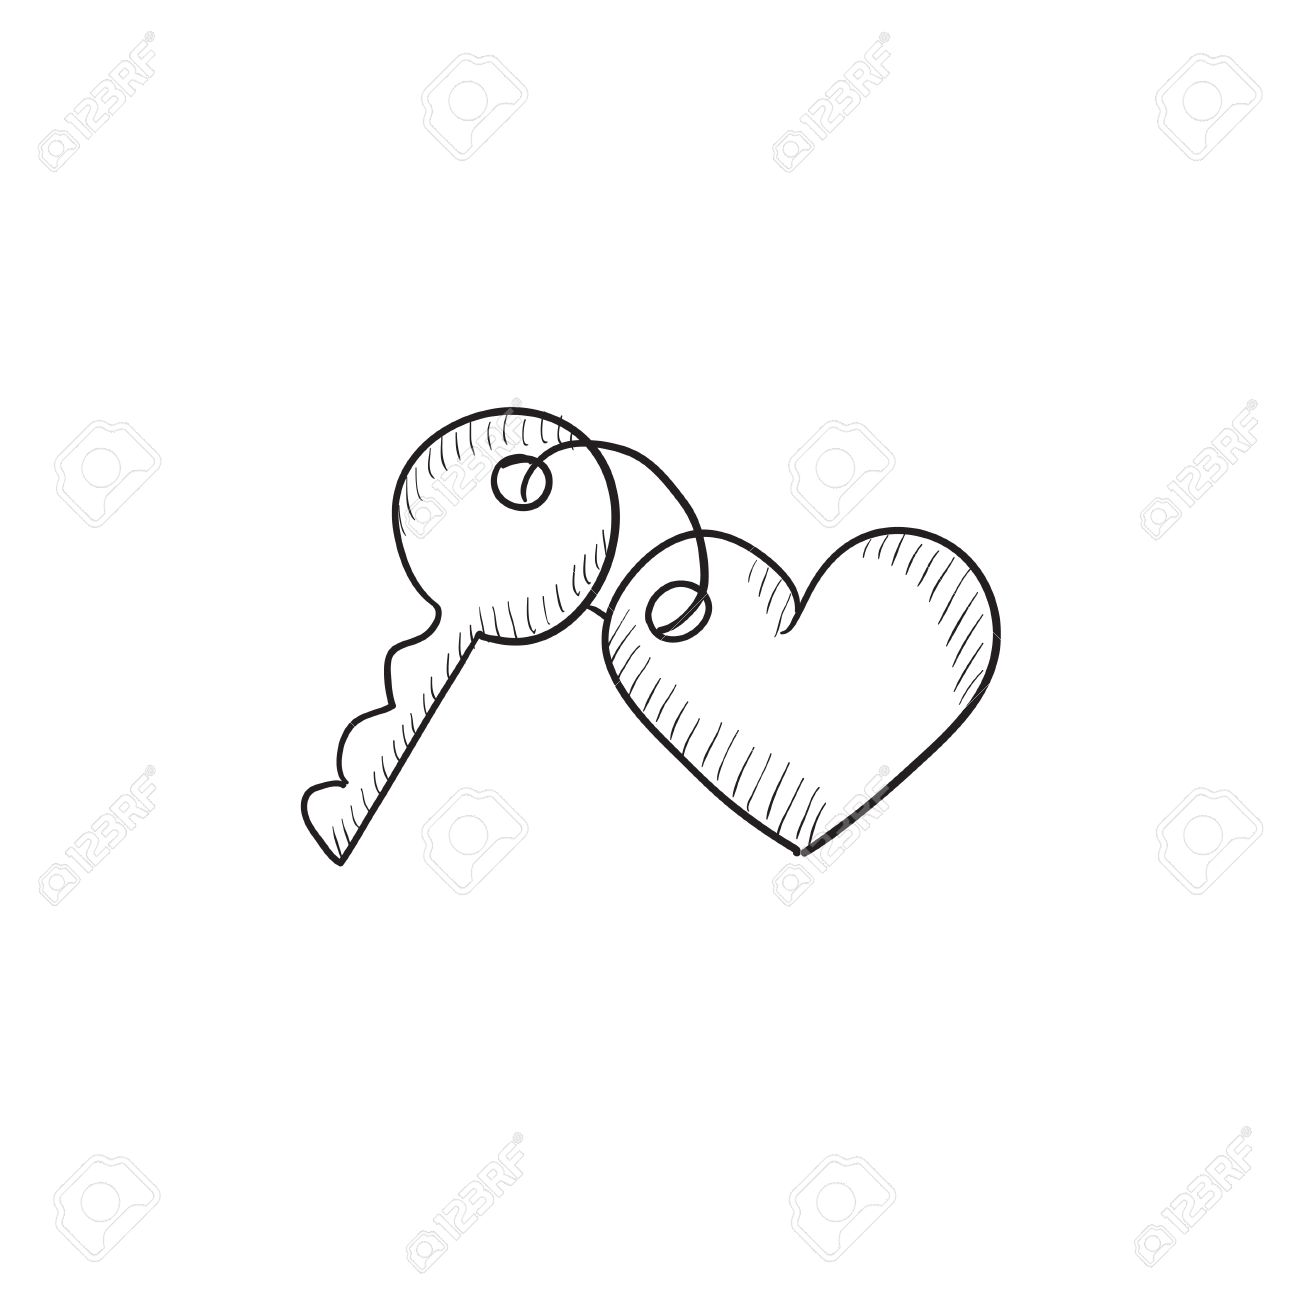 Trinket For Keys As Heart Vector Sketch Icon Isolated On Background